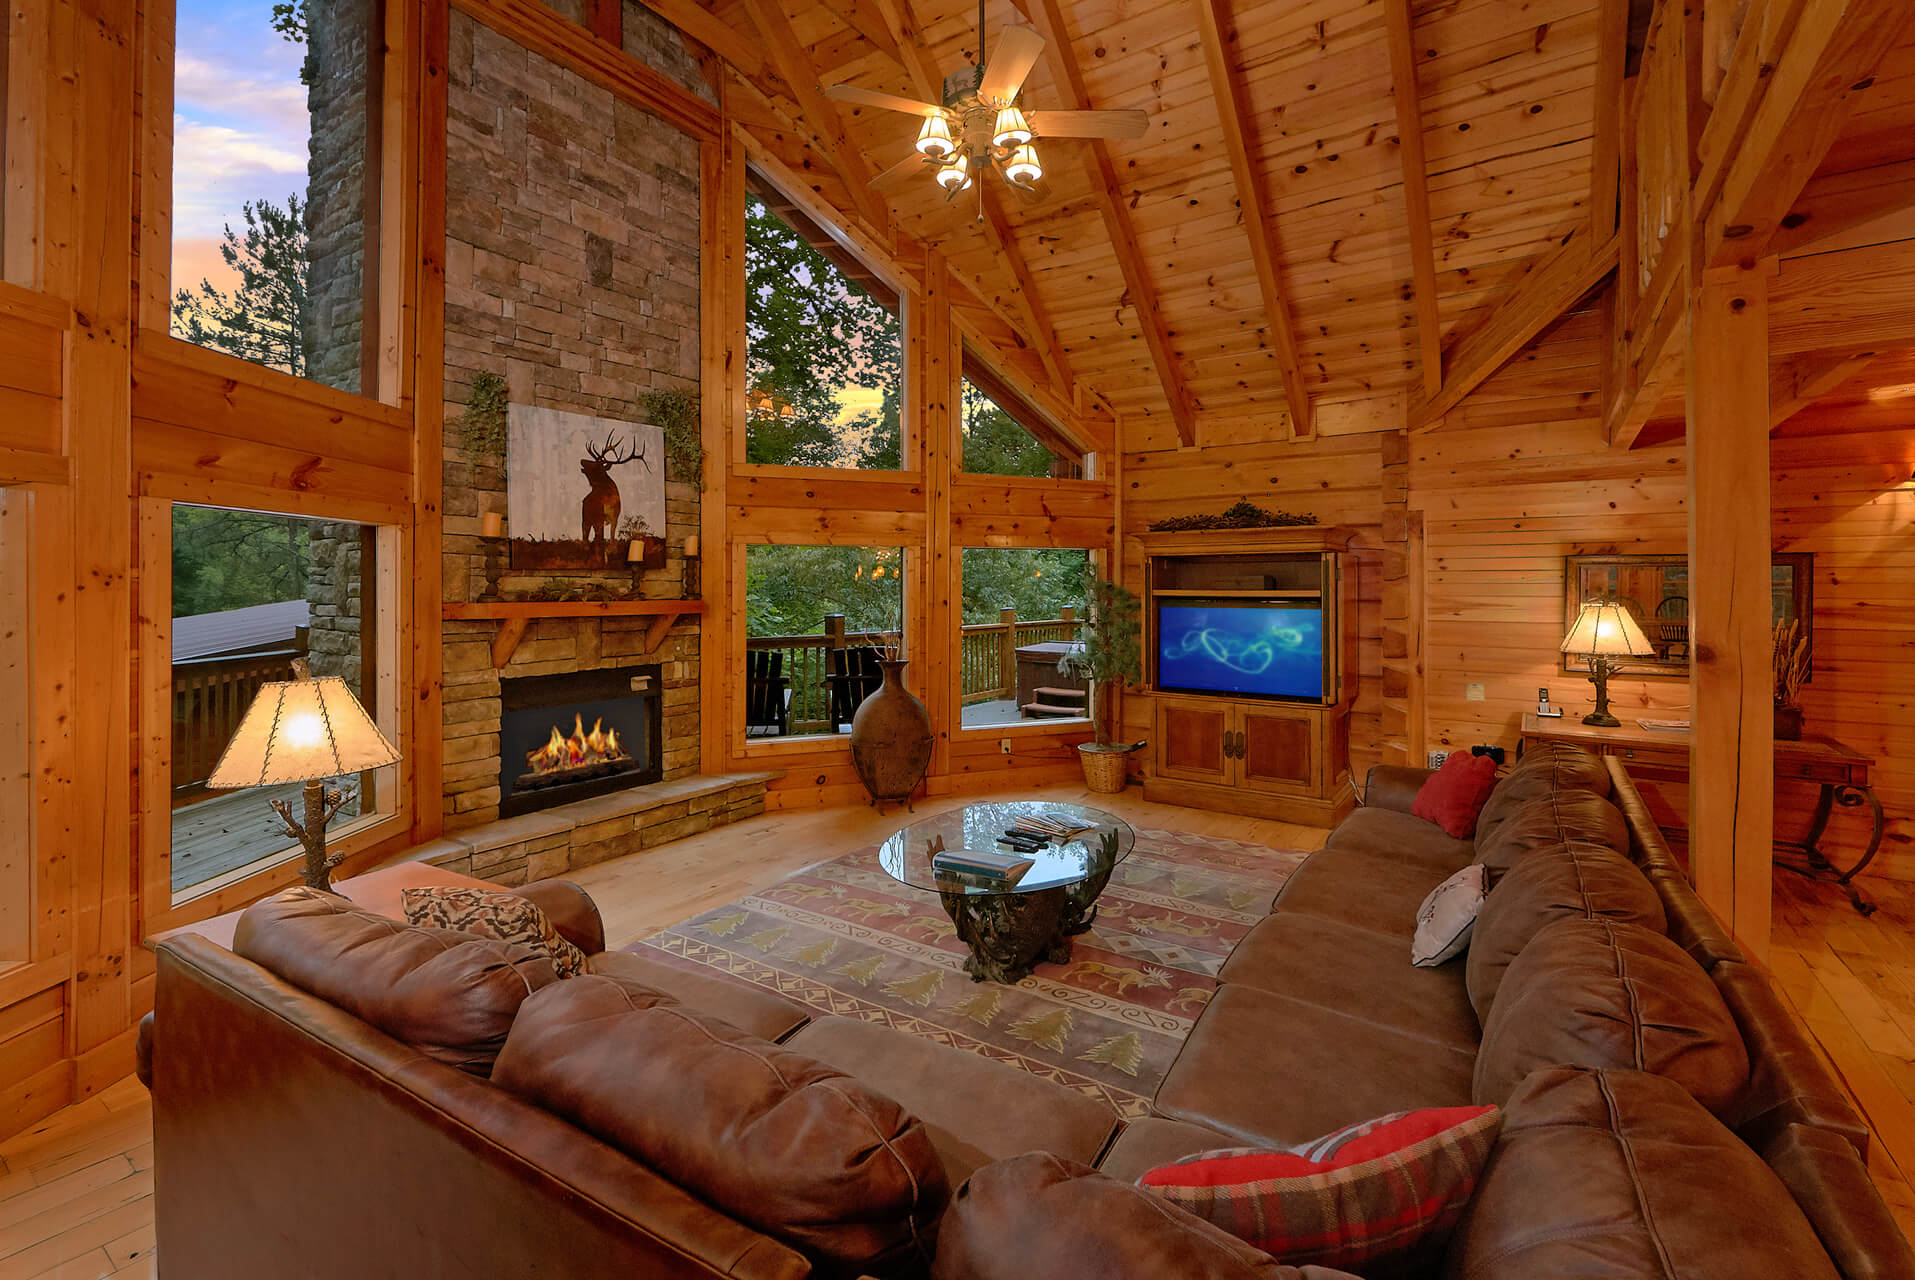 htm in log homes properties cabins gatlinburg sevierville tn sale for aboutkenny img